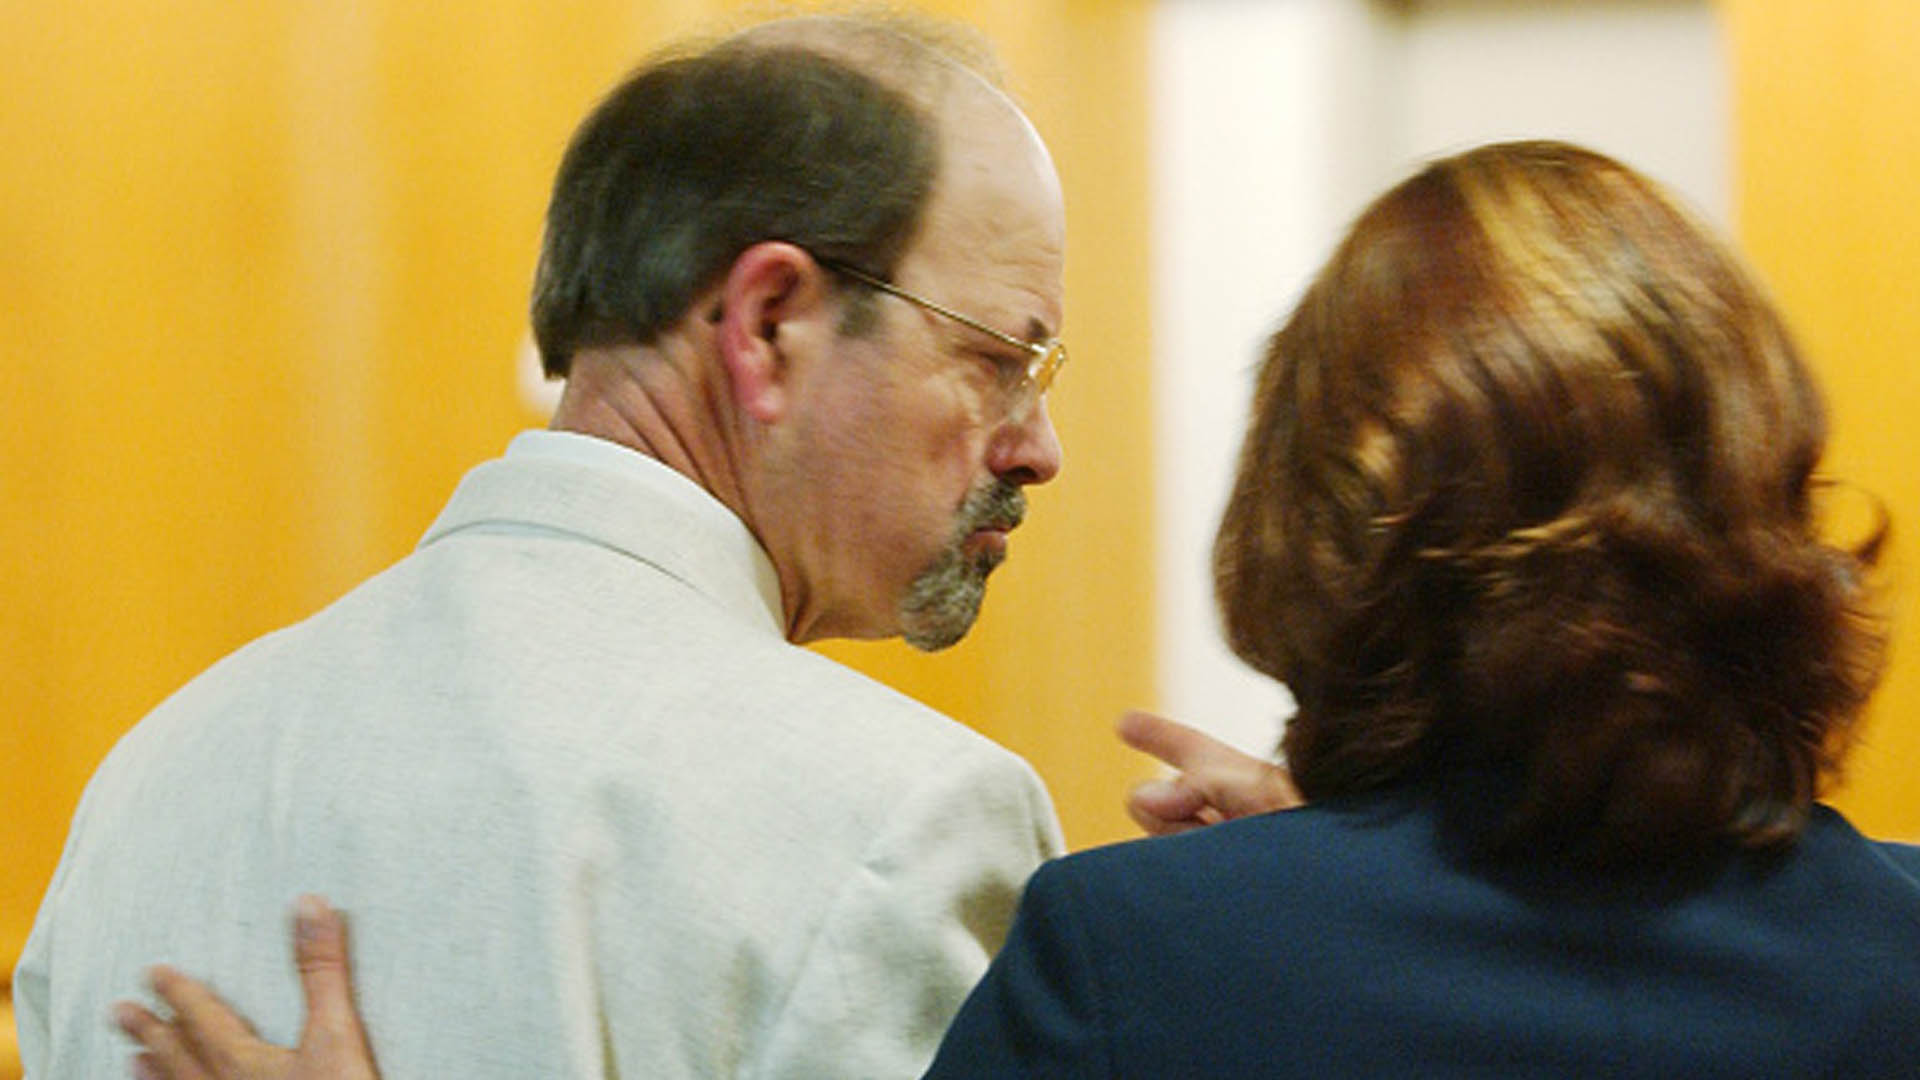 dennis_rader_btk_serial_killer_wichita_getty_1920_1080_1524685525683.jpg